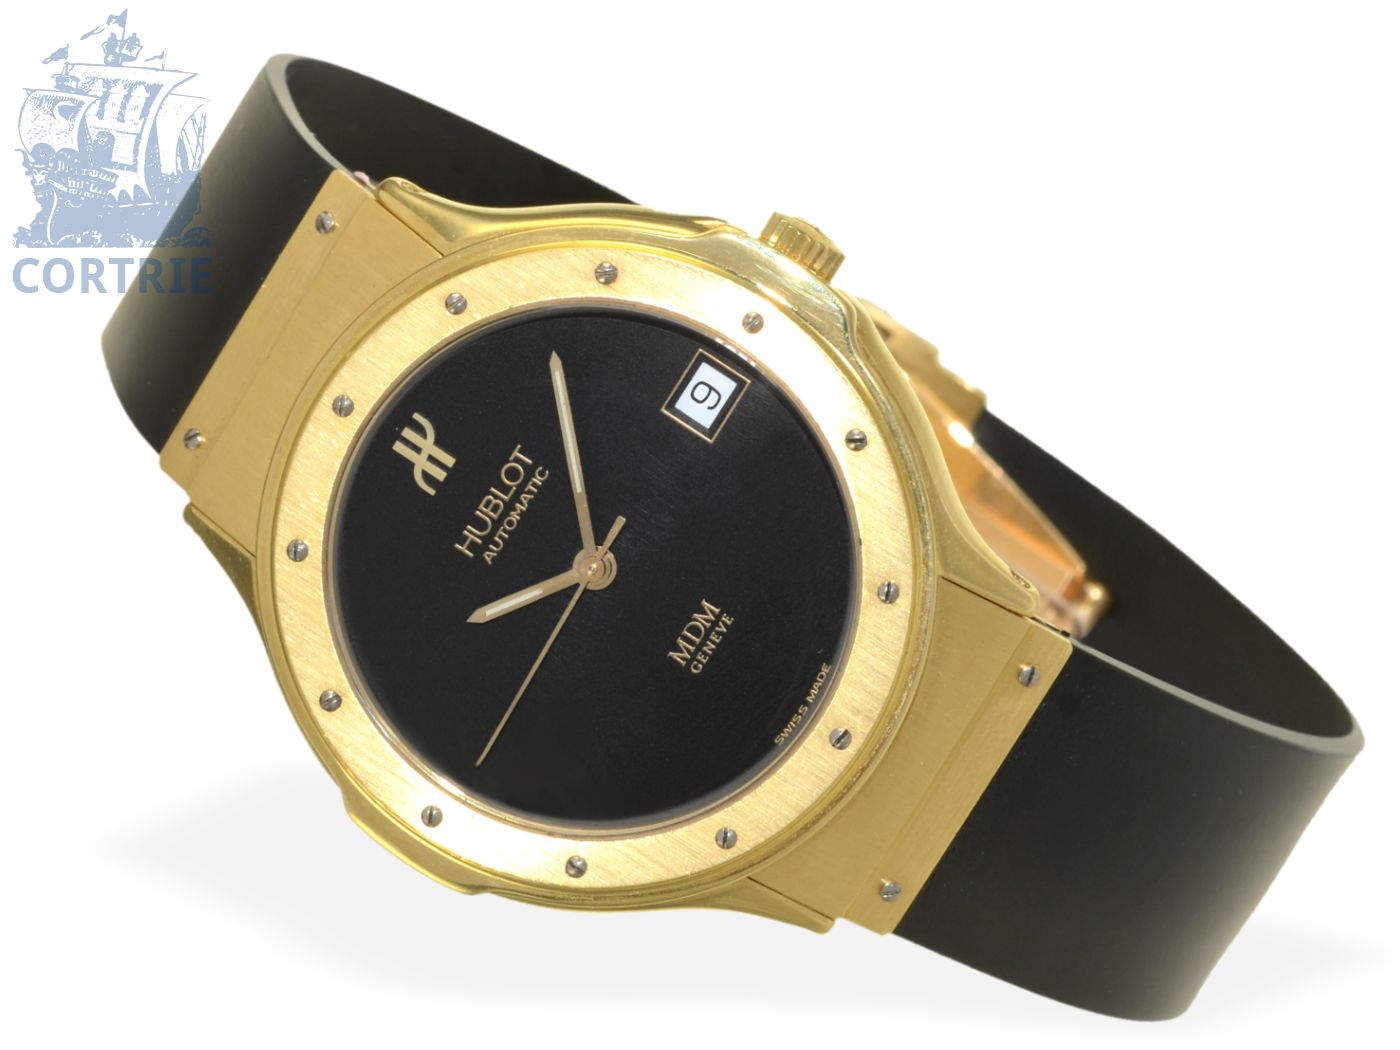 Wristwatch: classy gentlemen's watch Hublot MDM Automatic, 18K gold-